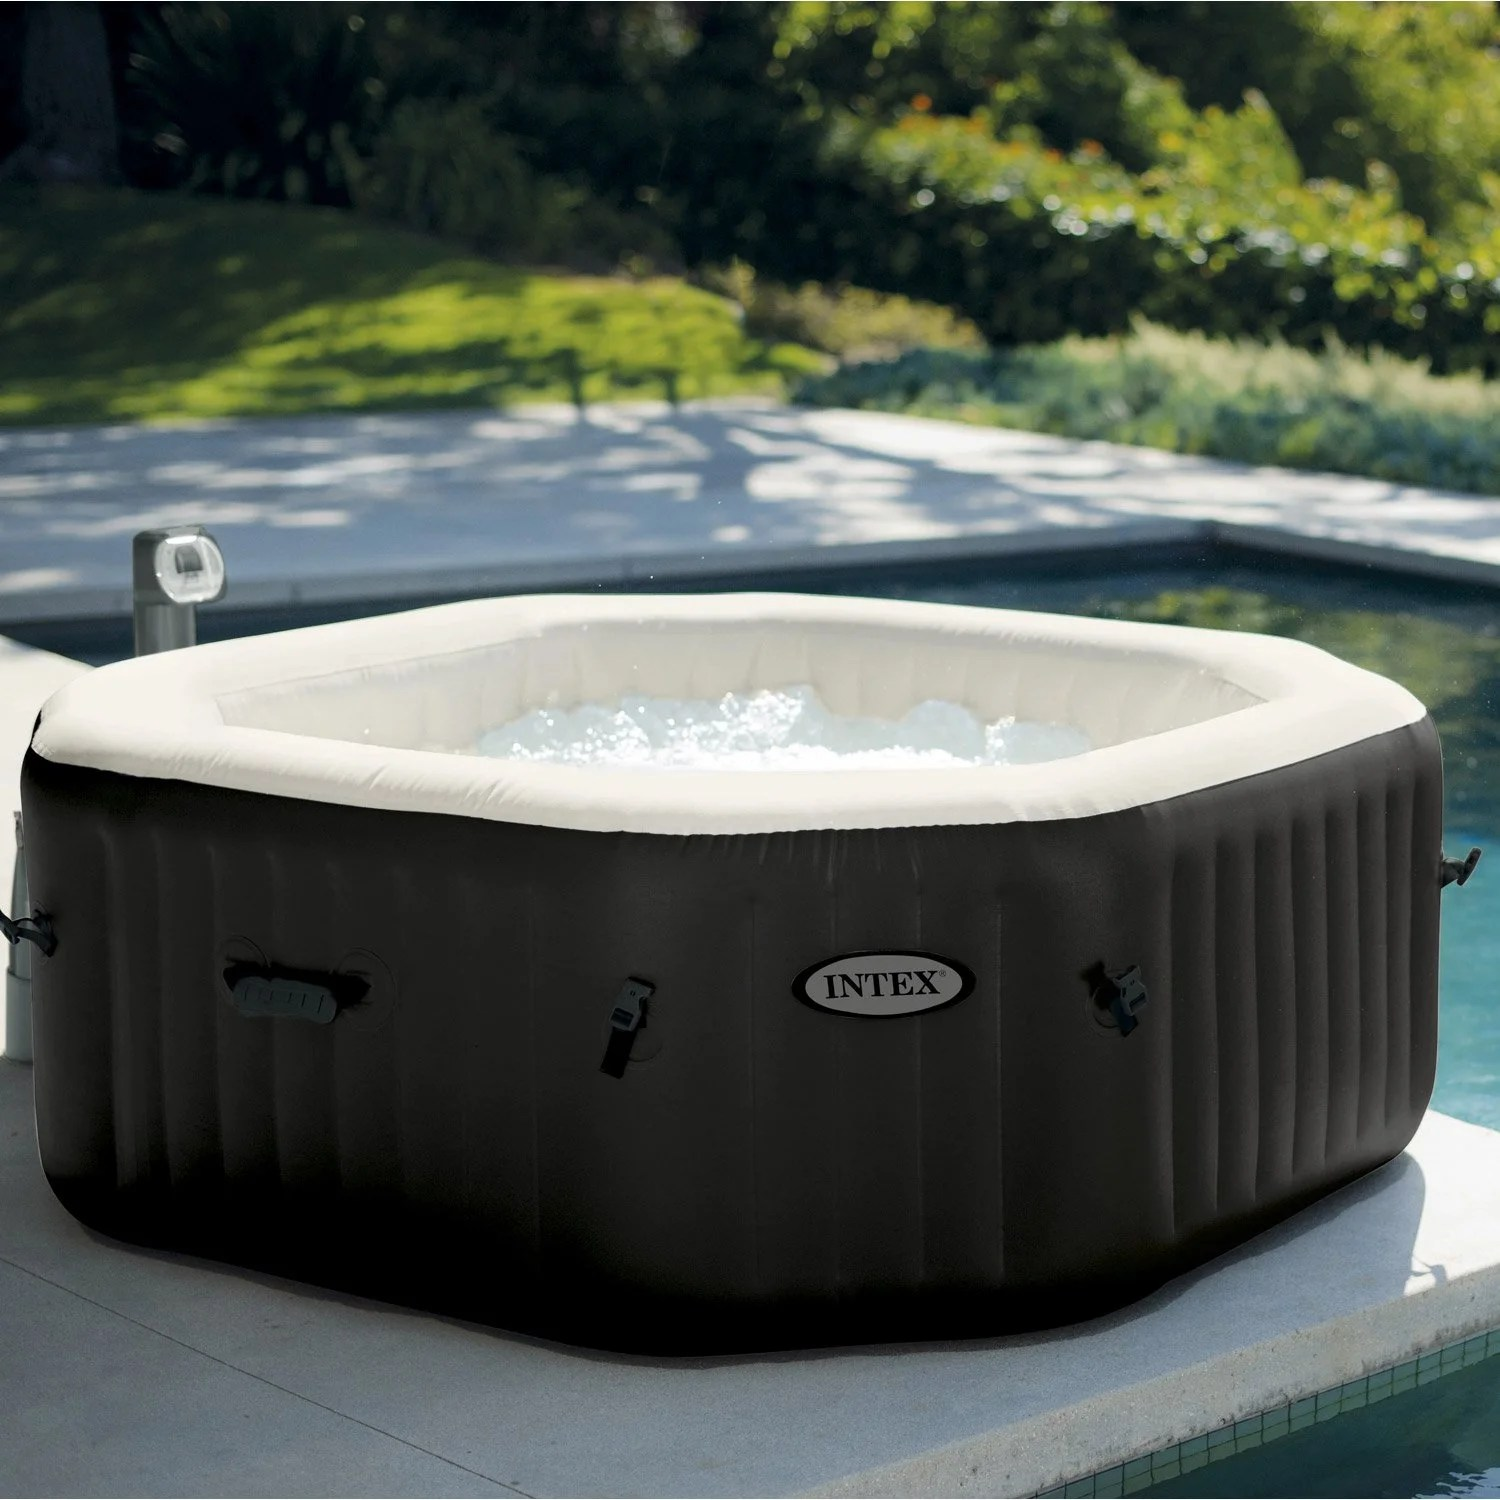 Spa Exterieur Bois 2 3 Places Spa Gonflable Octogonale Intex 4 Places Assises Leroy